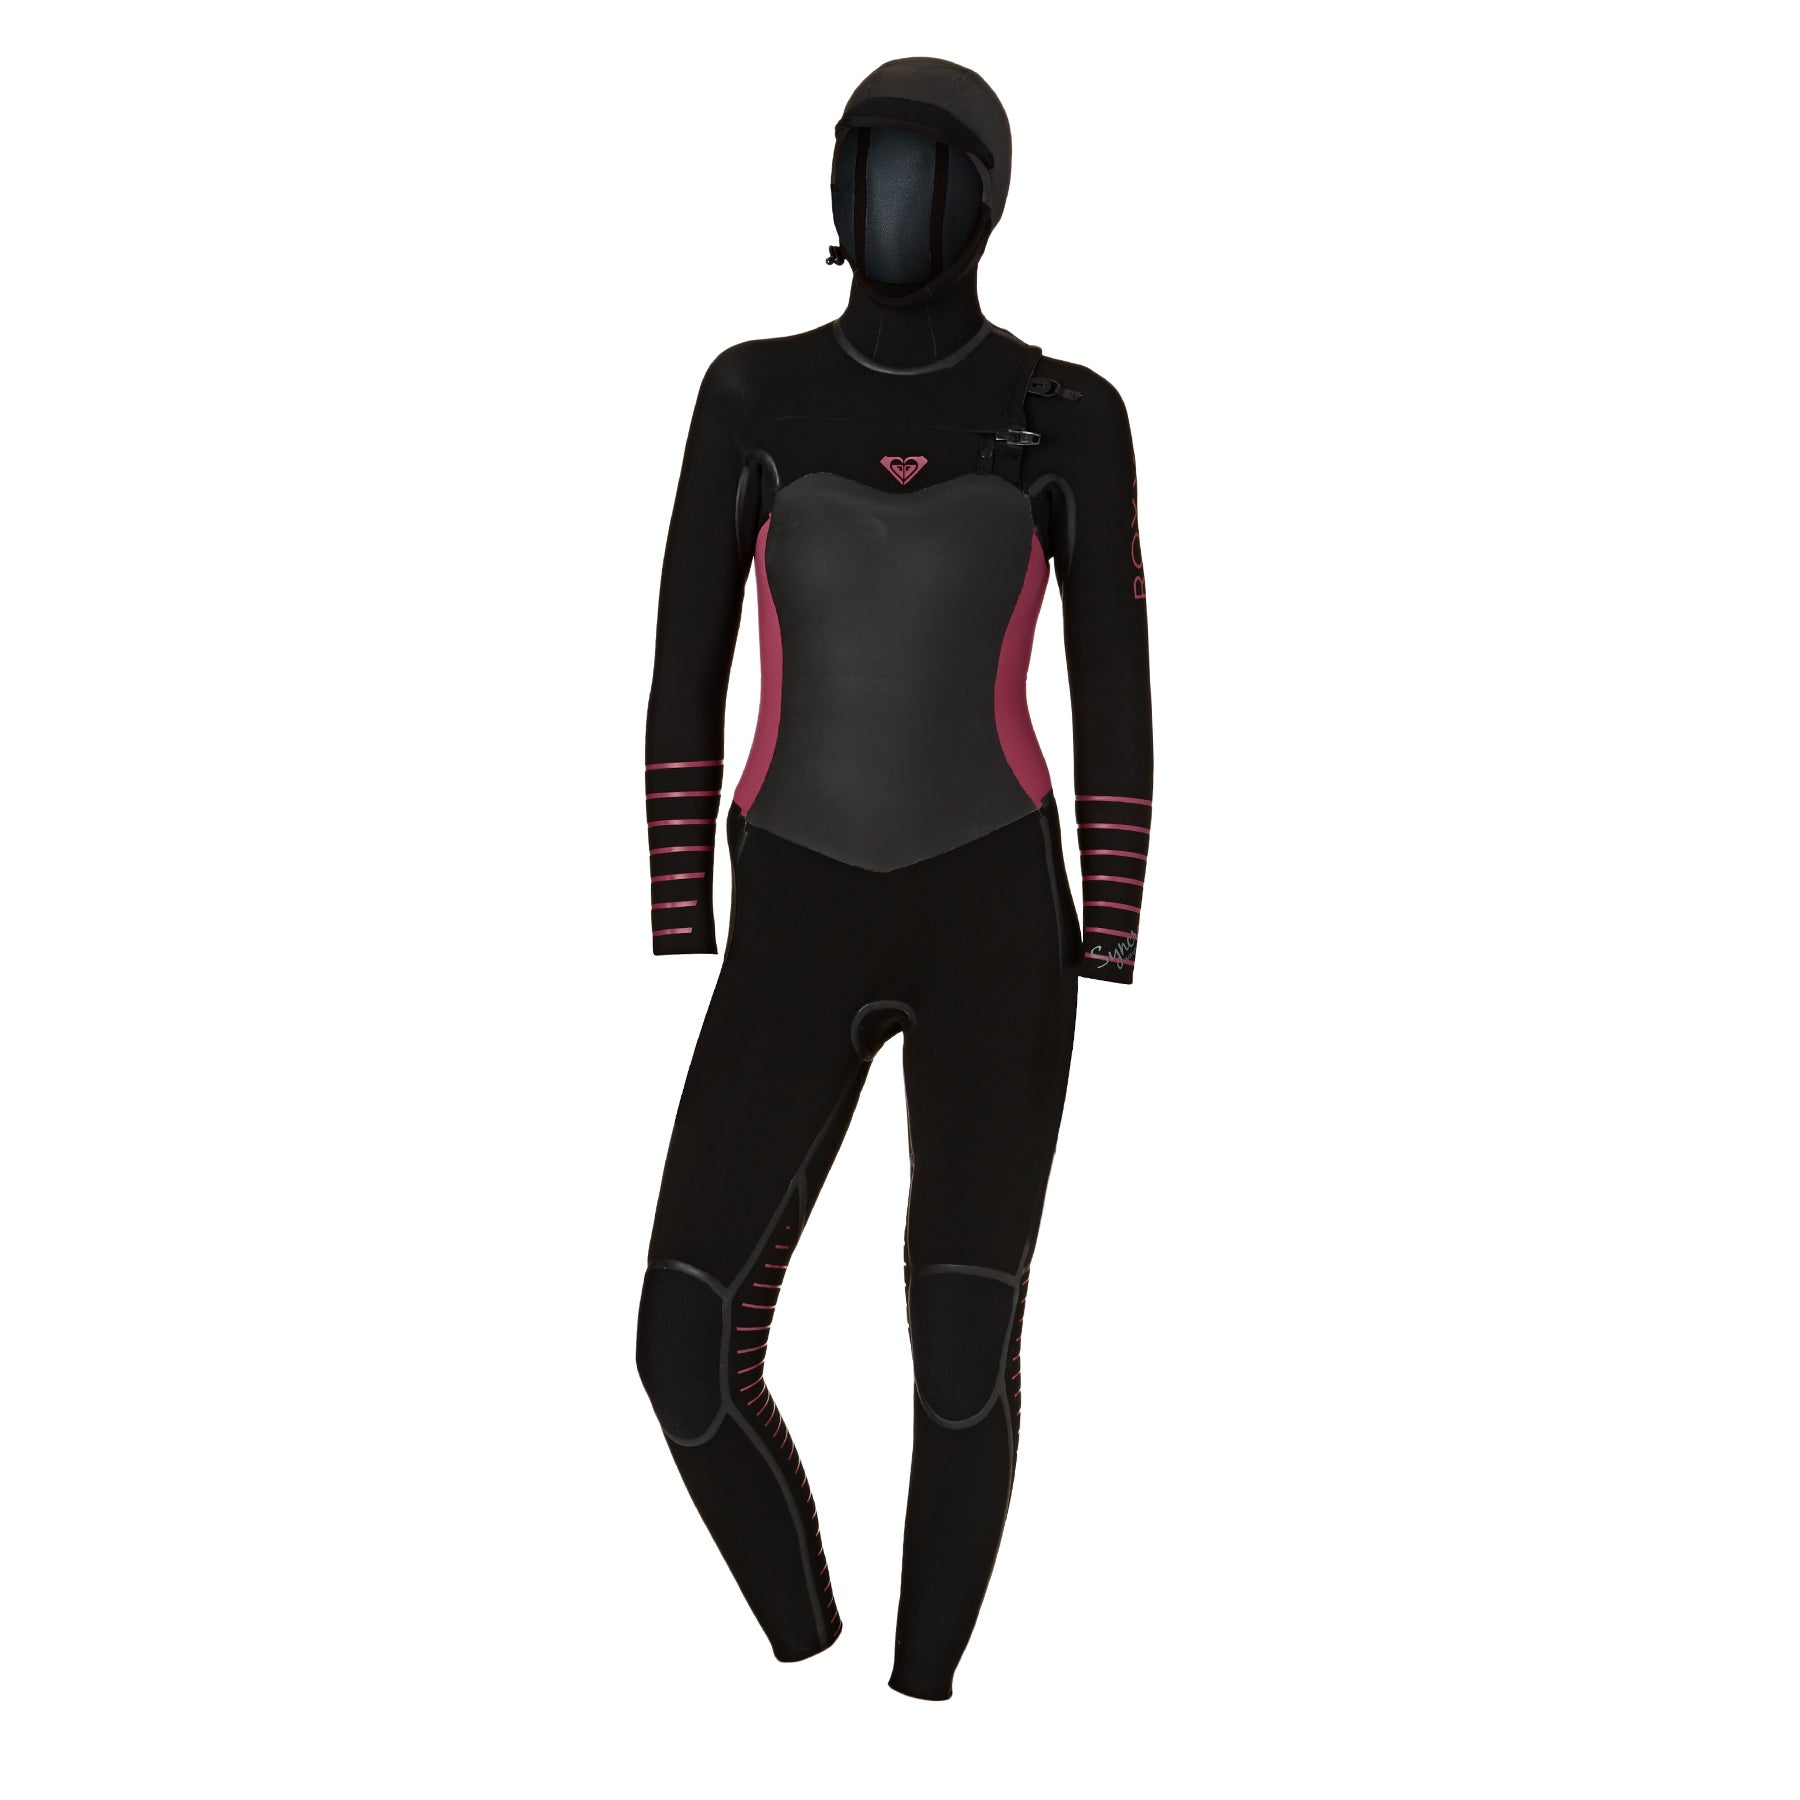 bf8e3a88a6941 Roxy 5 4 3mm 2018 Womens Syncro Plus Hooded Chest Zip Womens Wetsuit ...